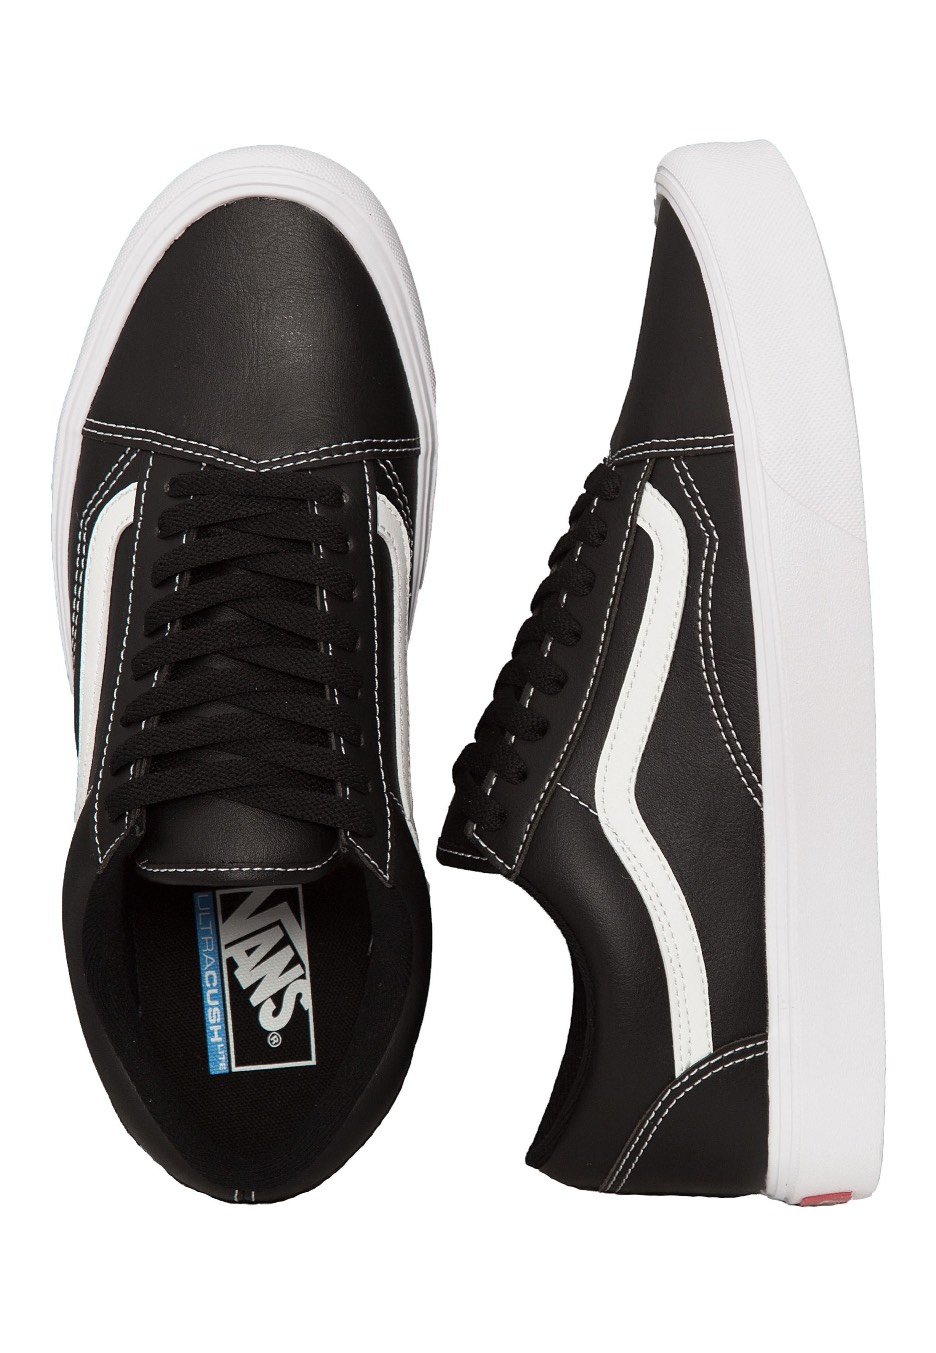 b1df1301f4 Vans - Old Skool Lite Classic Tumble Black True White - Shoes -  Impericon.com UK